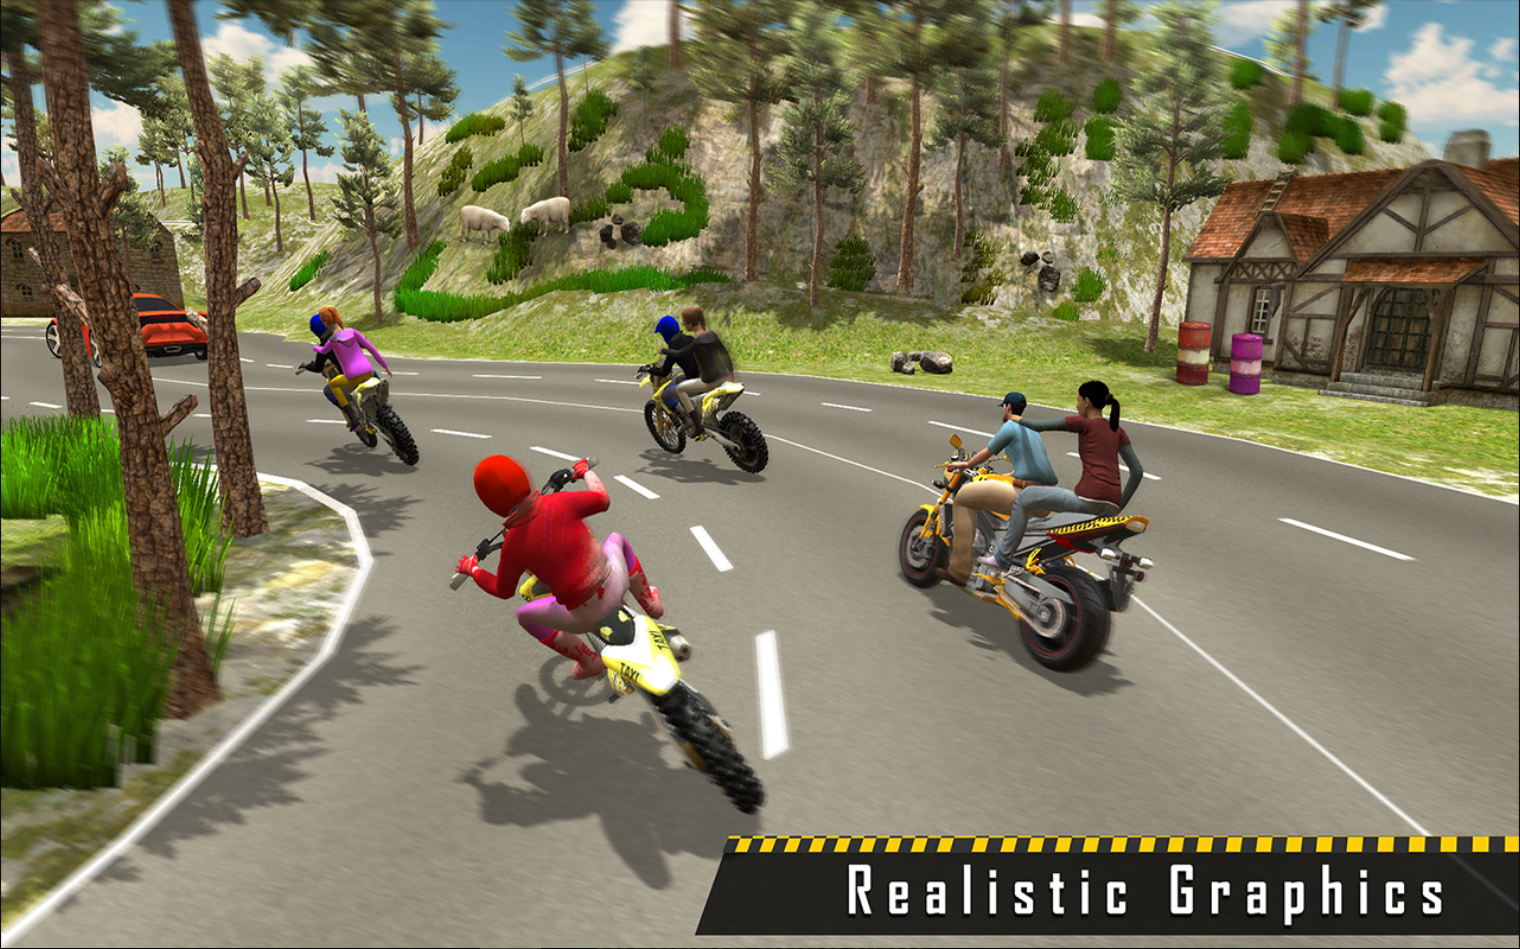 Try the new Bike simulation game: New Sports Bike Taxi Sim